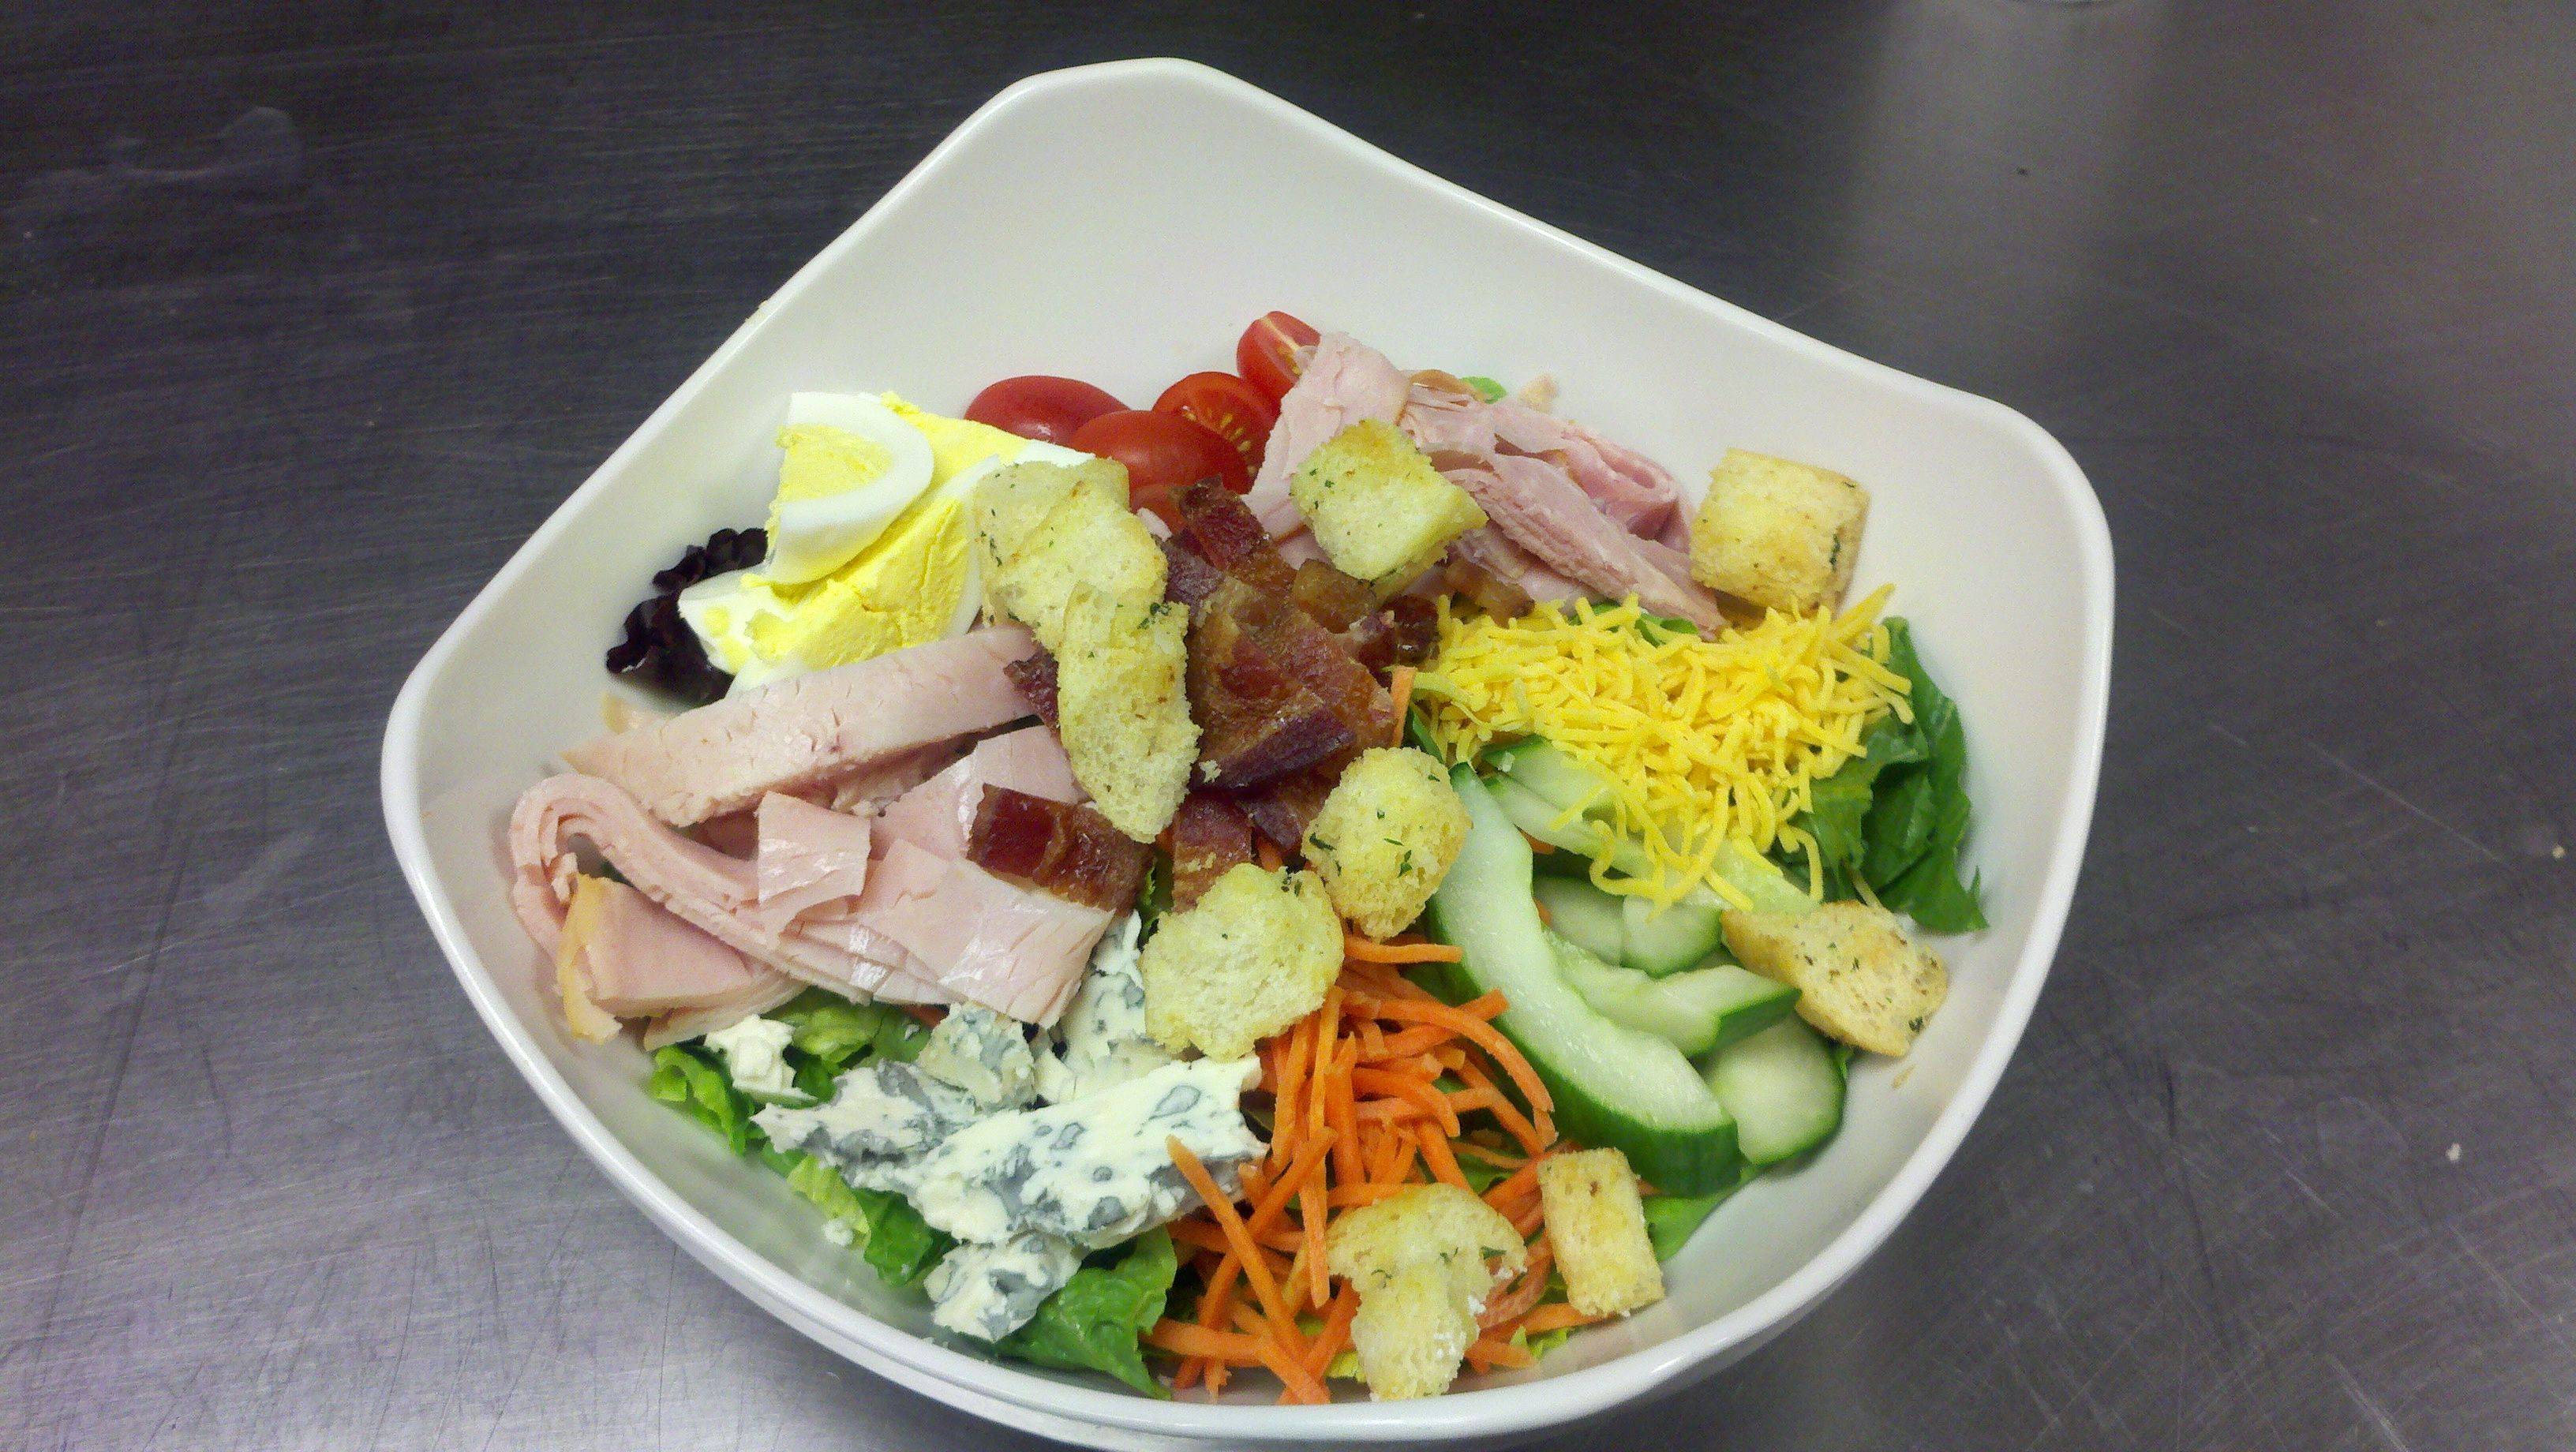 Hilton Asheville - Roux weekly special: Chef's Salad